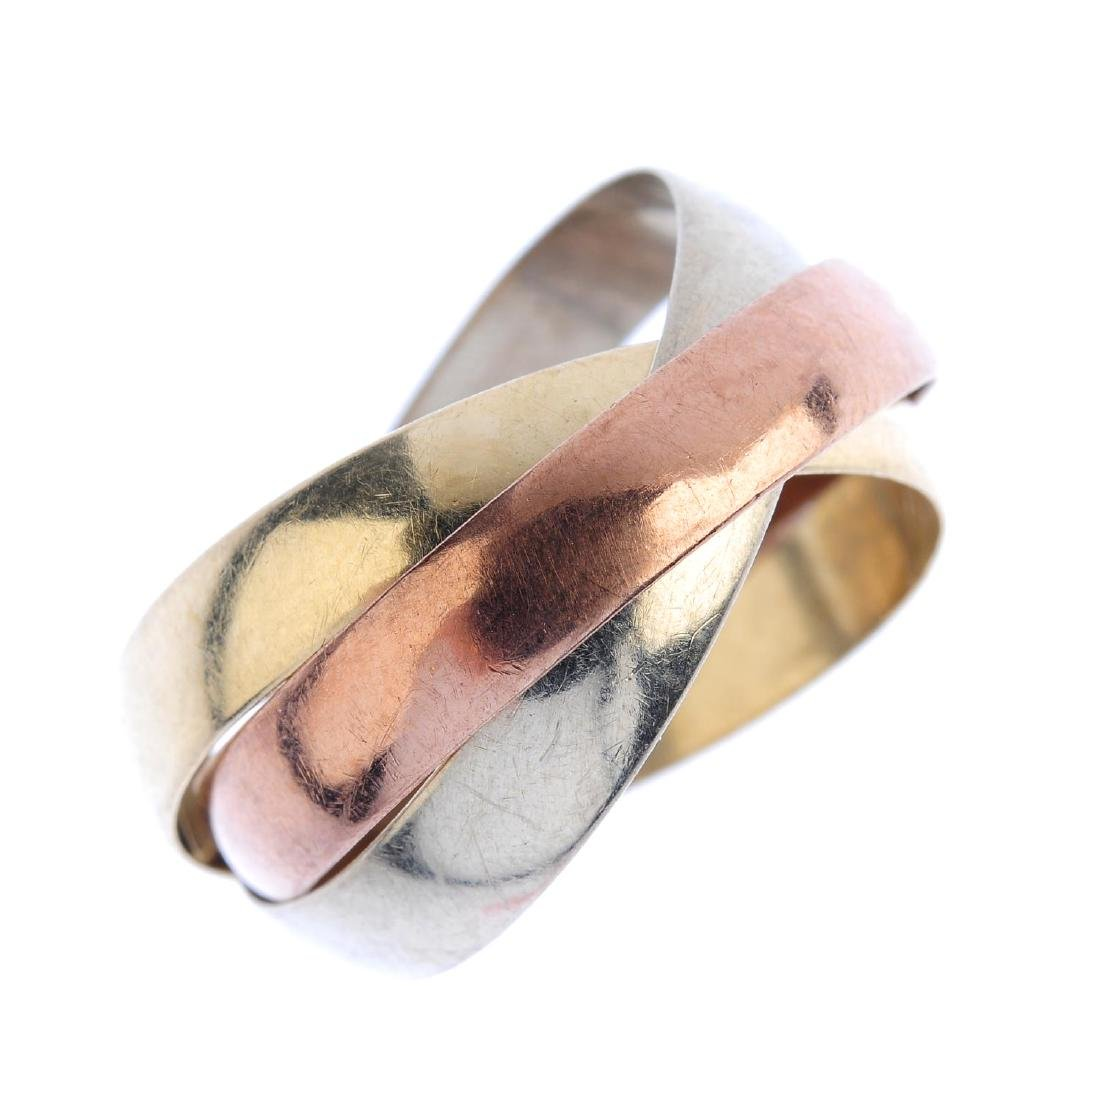 A 9ct gold band ring. Of tri-colour design, comprising